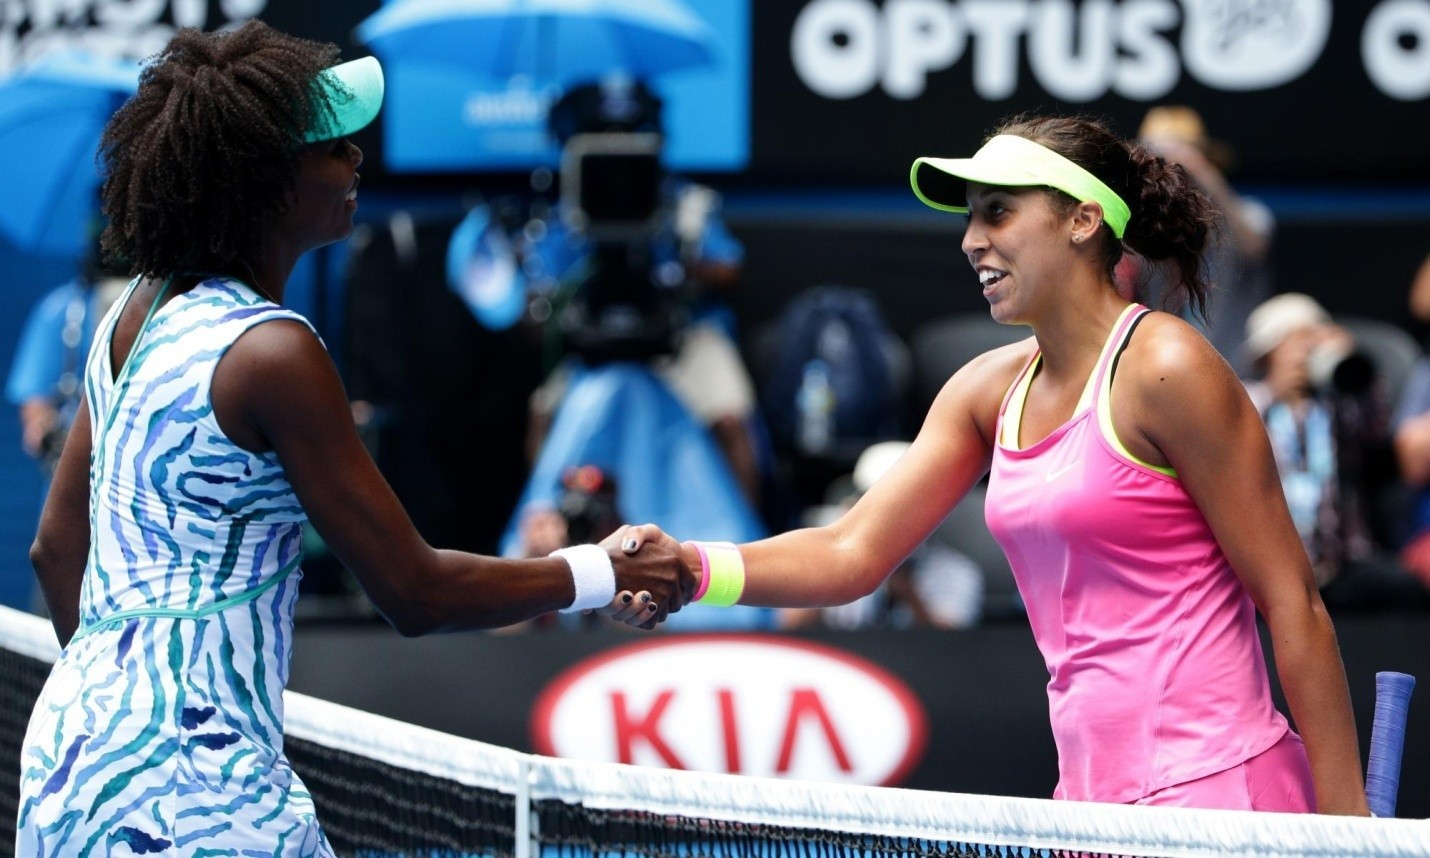 Keys ousts Venus Williams